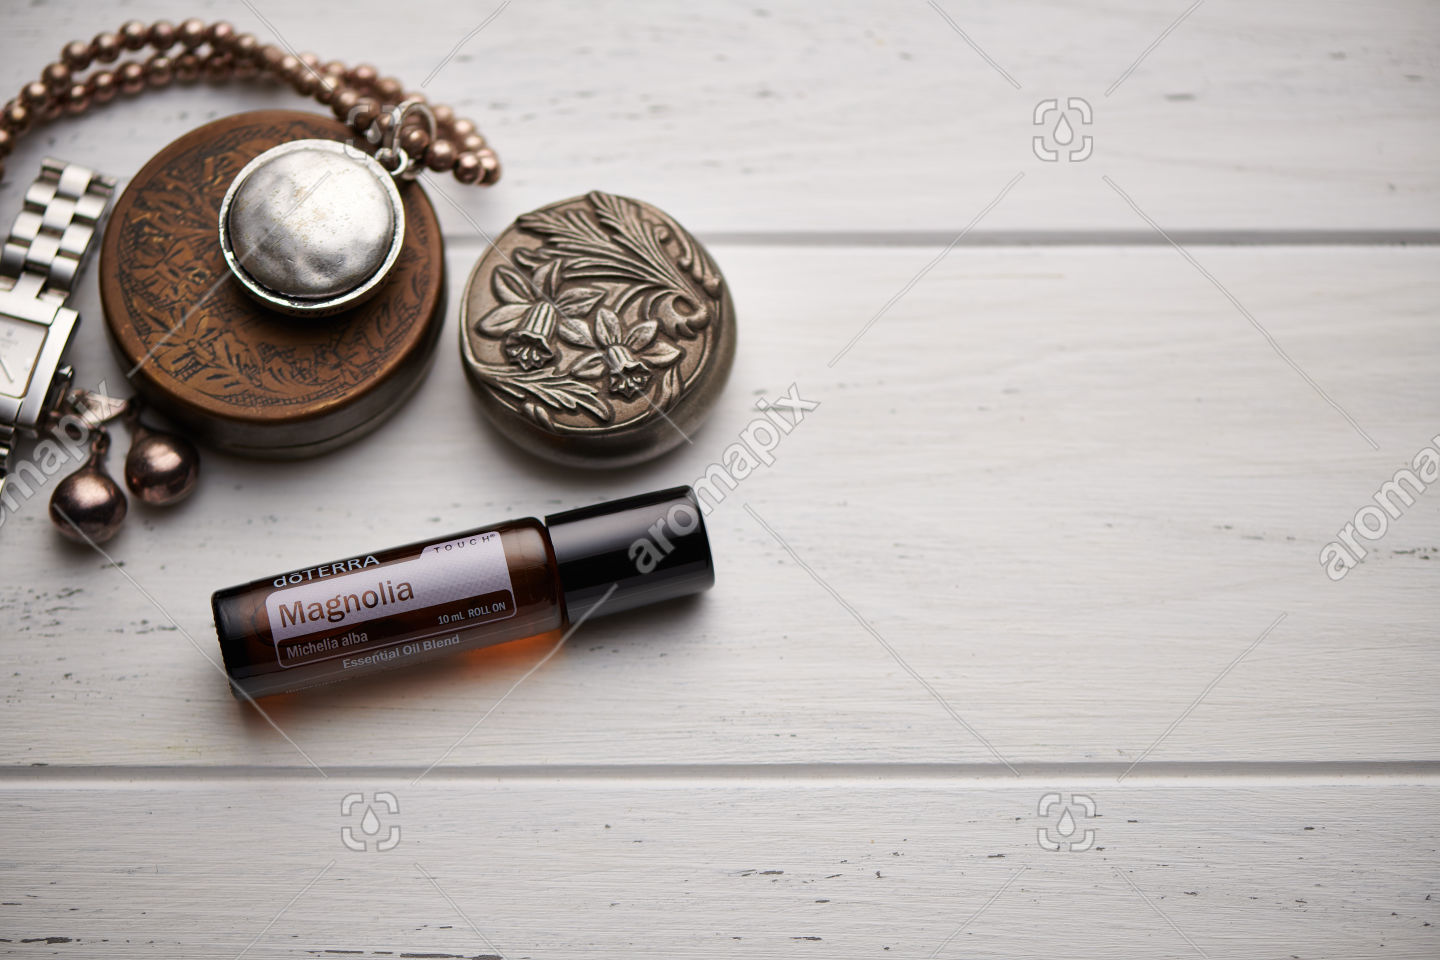 doTERRA Magnolia Touch on rustic background